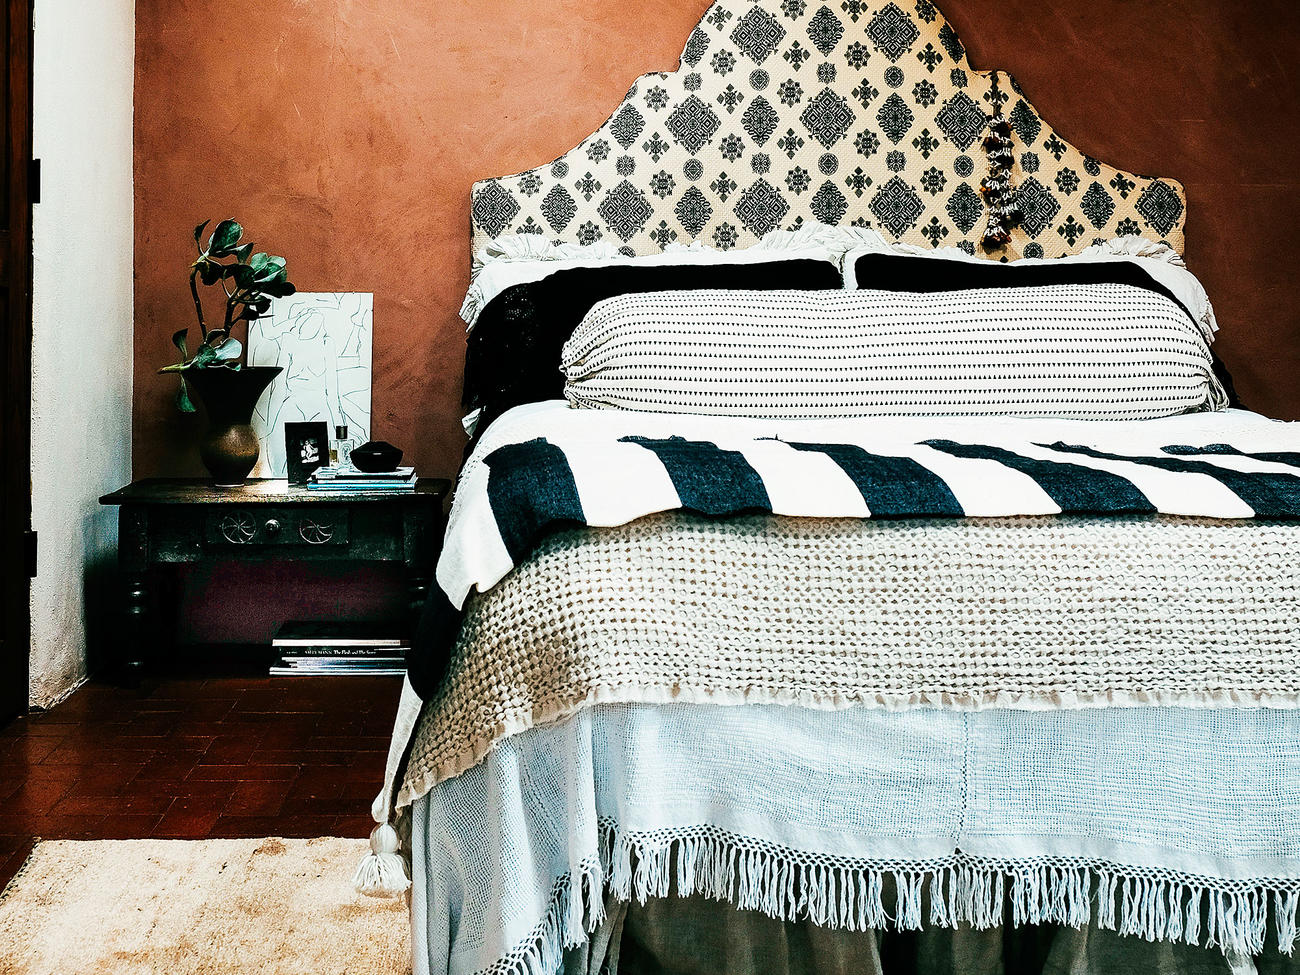 17 Ways to Decorate with Textiles